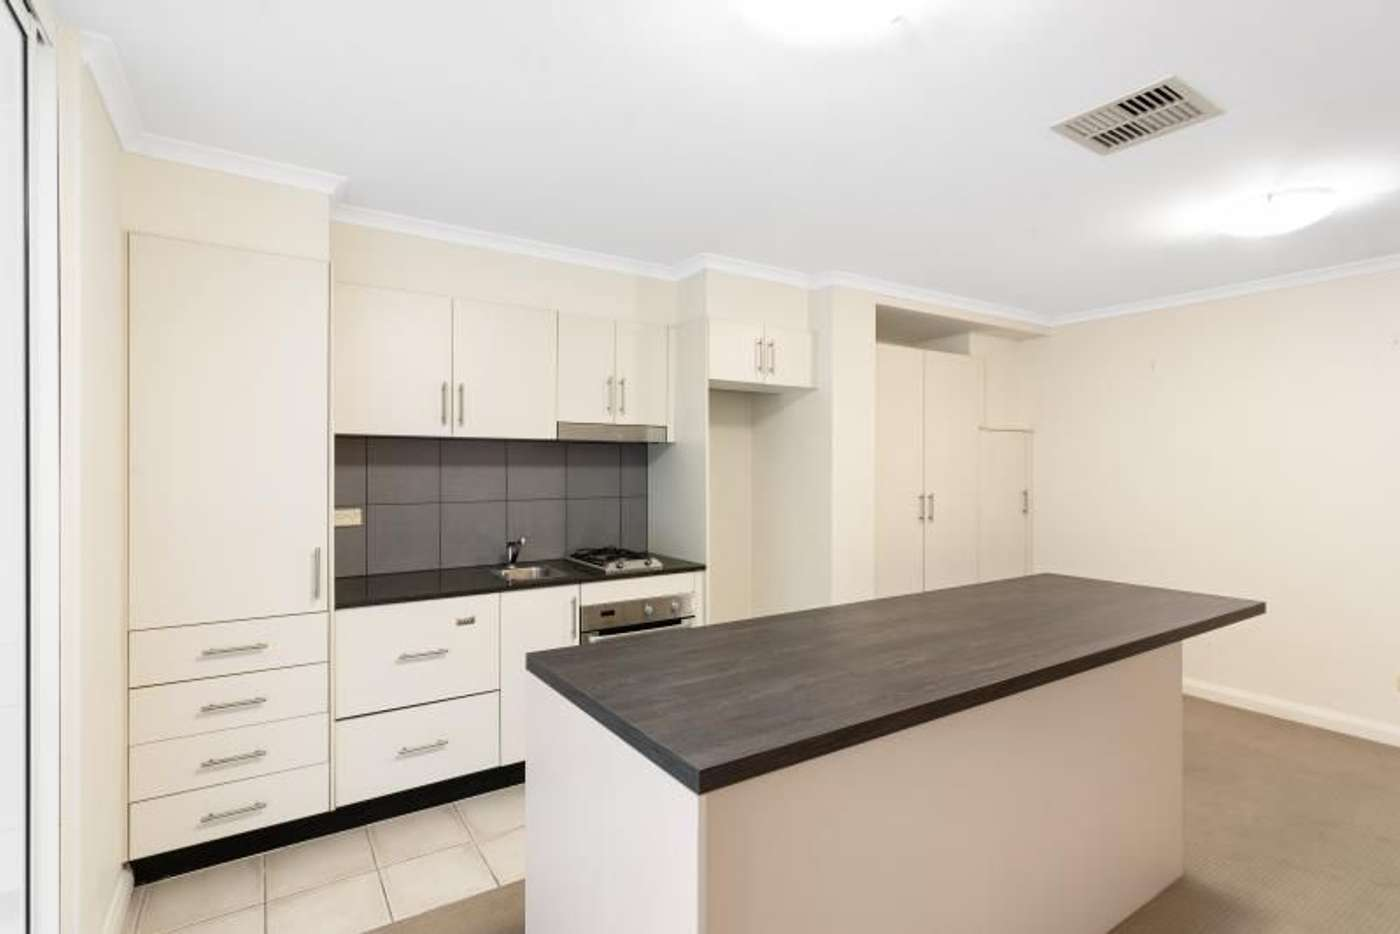 Fifth view of Homely apartment listing, 115/11A Lachlan Street, Waterloo NSW 2017